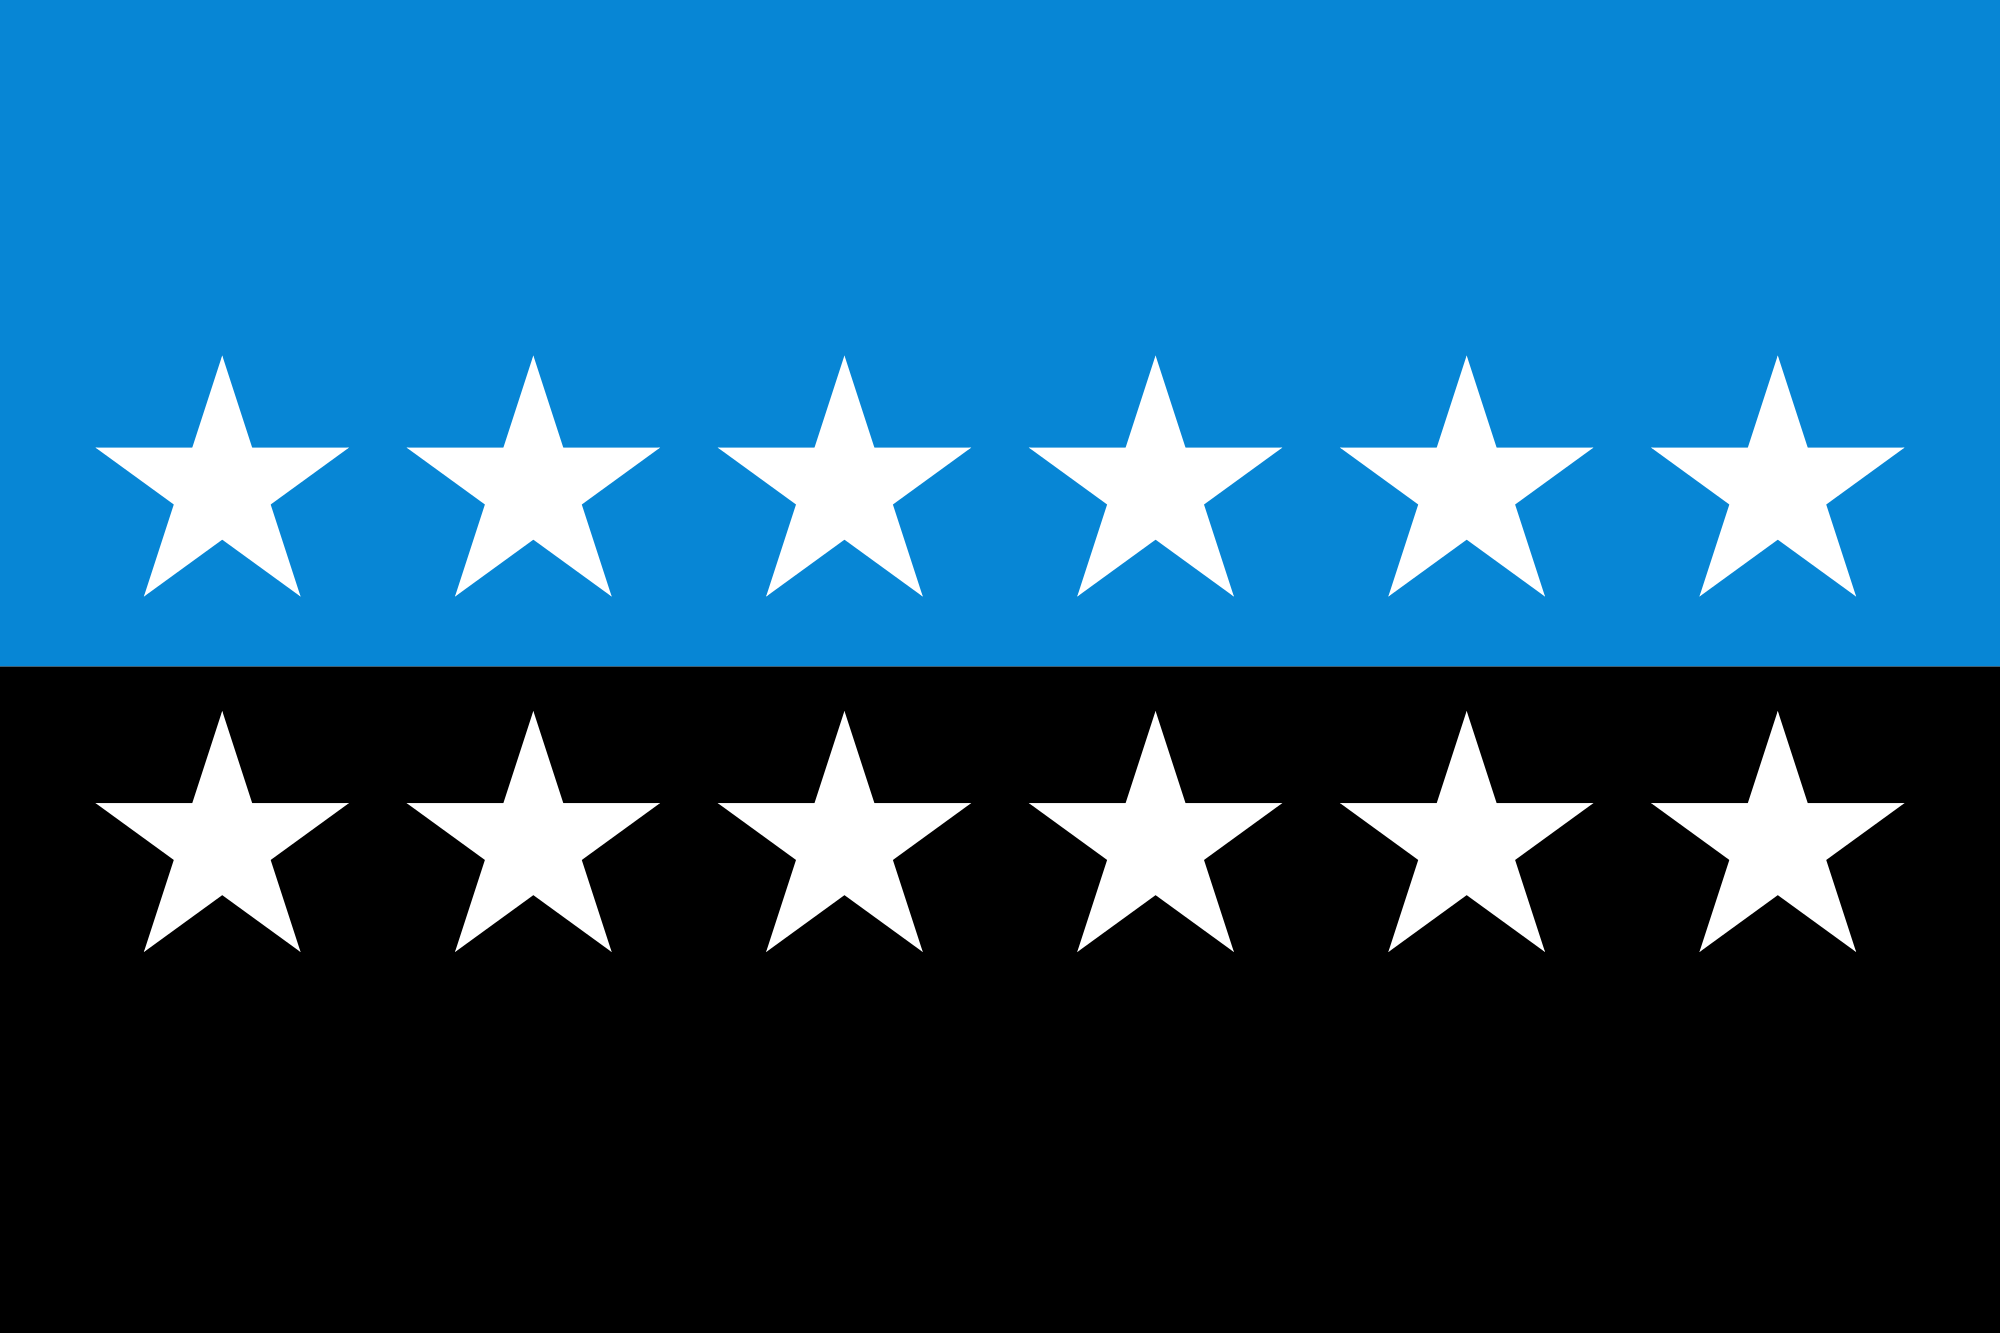 [final Flag of